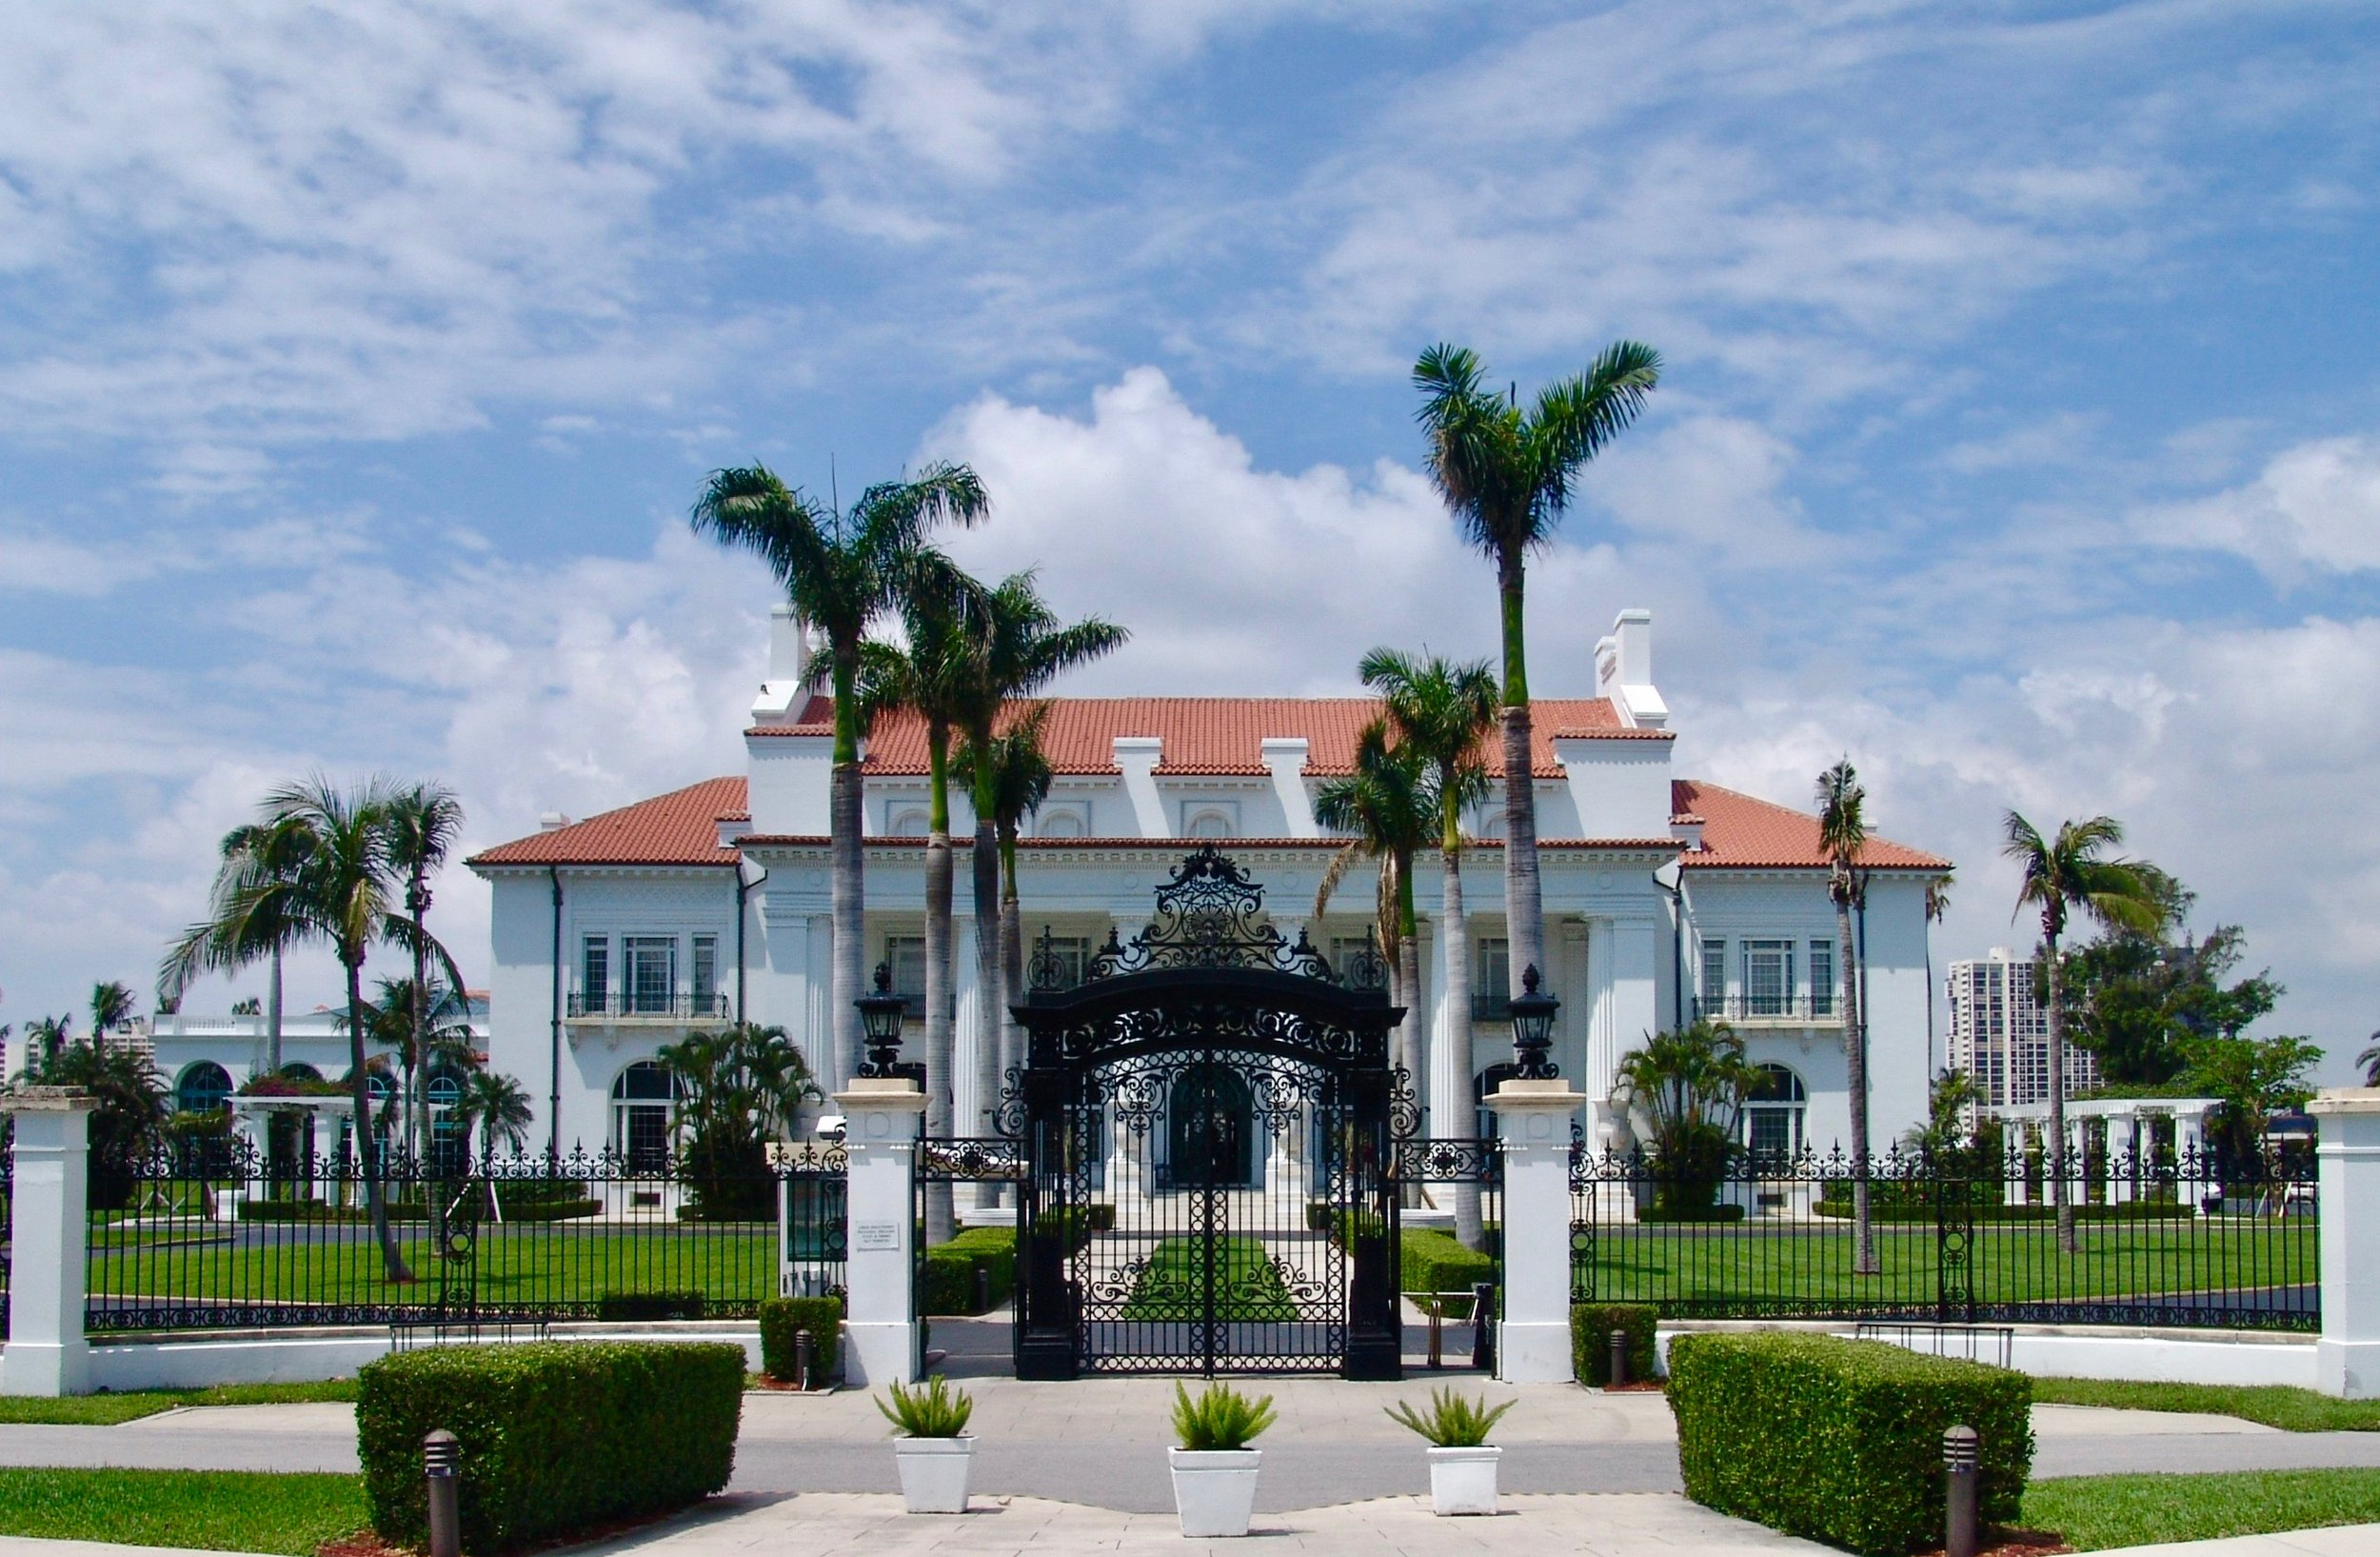 Whitehall, also known as the  Flagler Museum , is located on the west end of Royal Poinciana Way